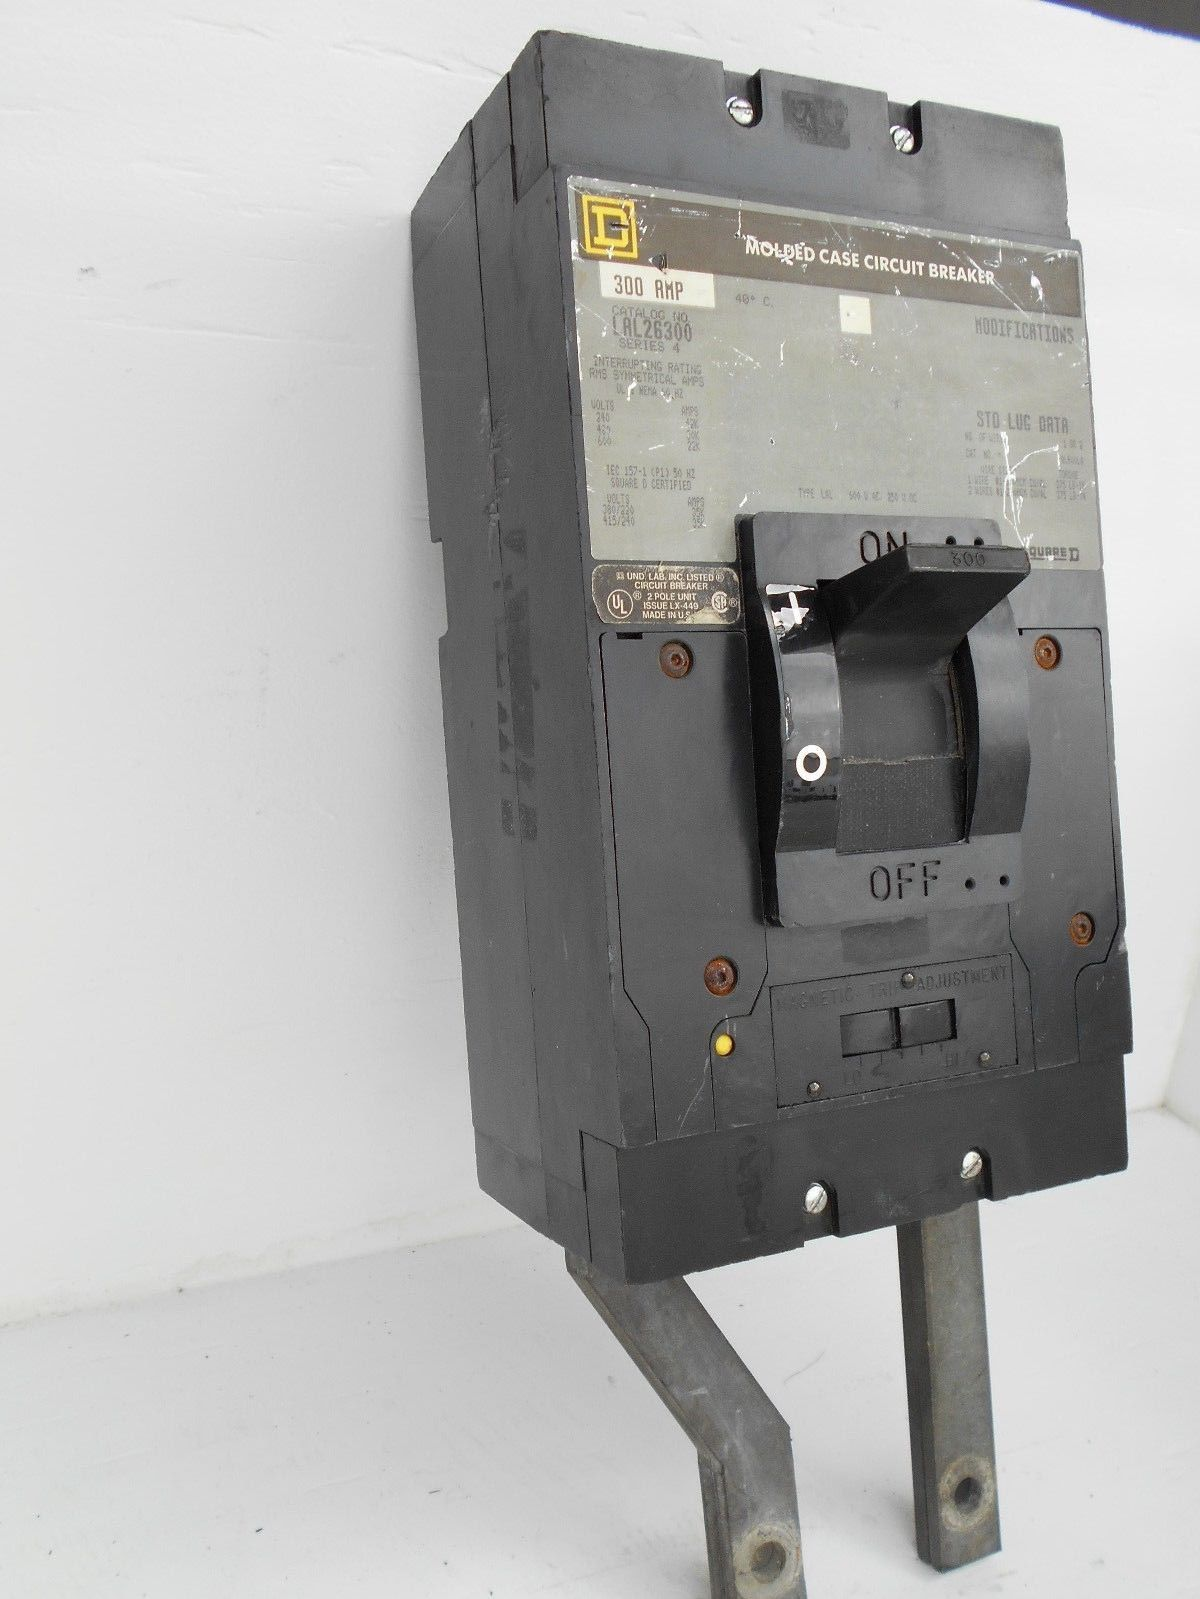 60 Amp Breaker >> SQUARE D LAL26300 BREAKER 300A 600V 2 POLE   Powered Electric Supply